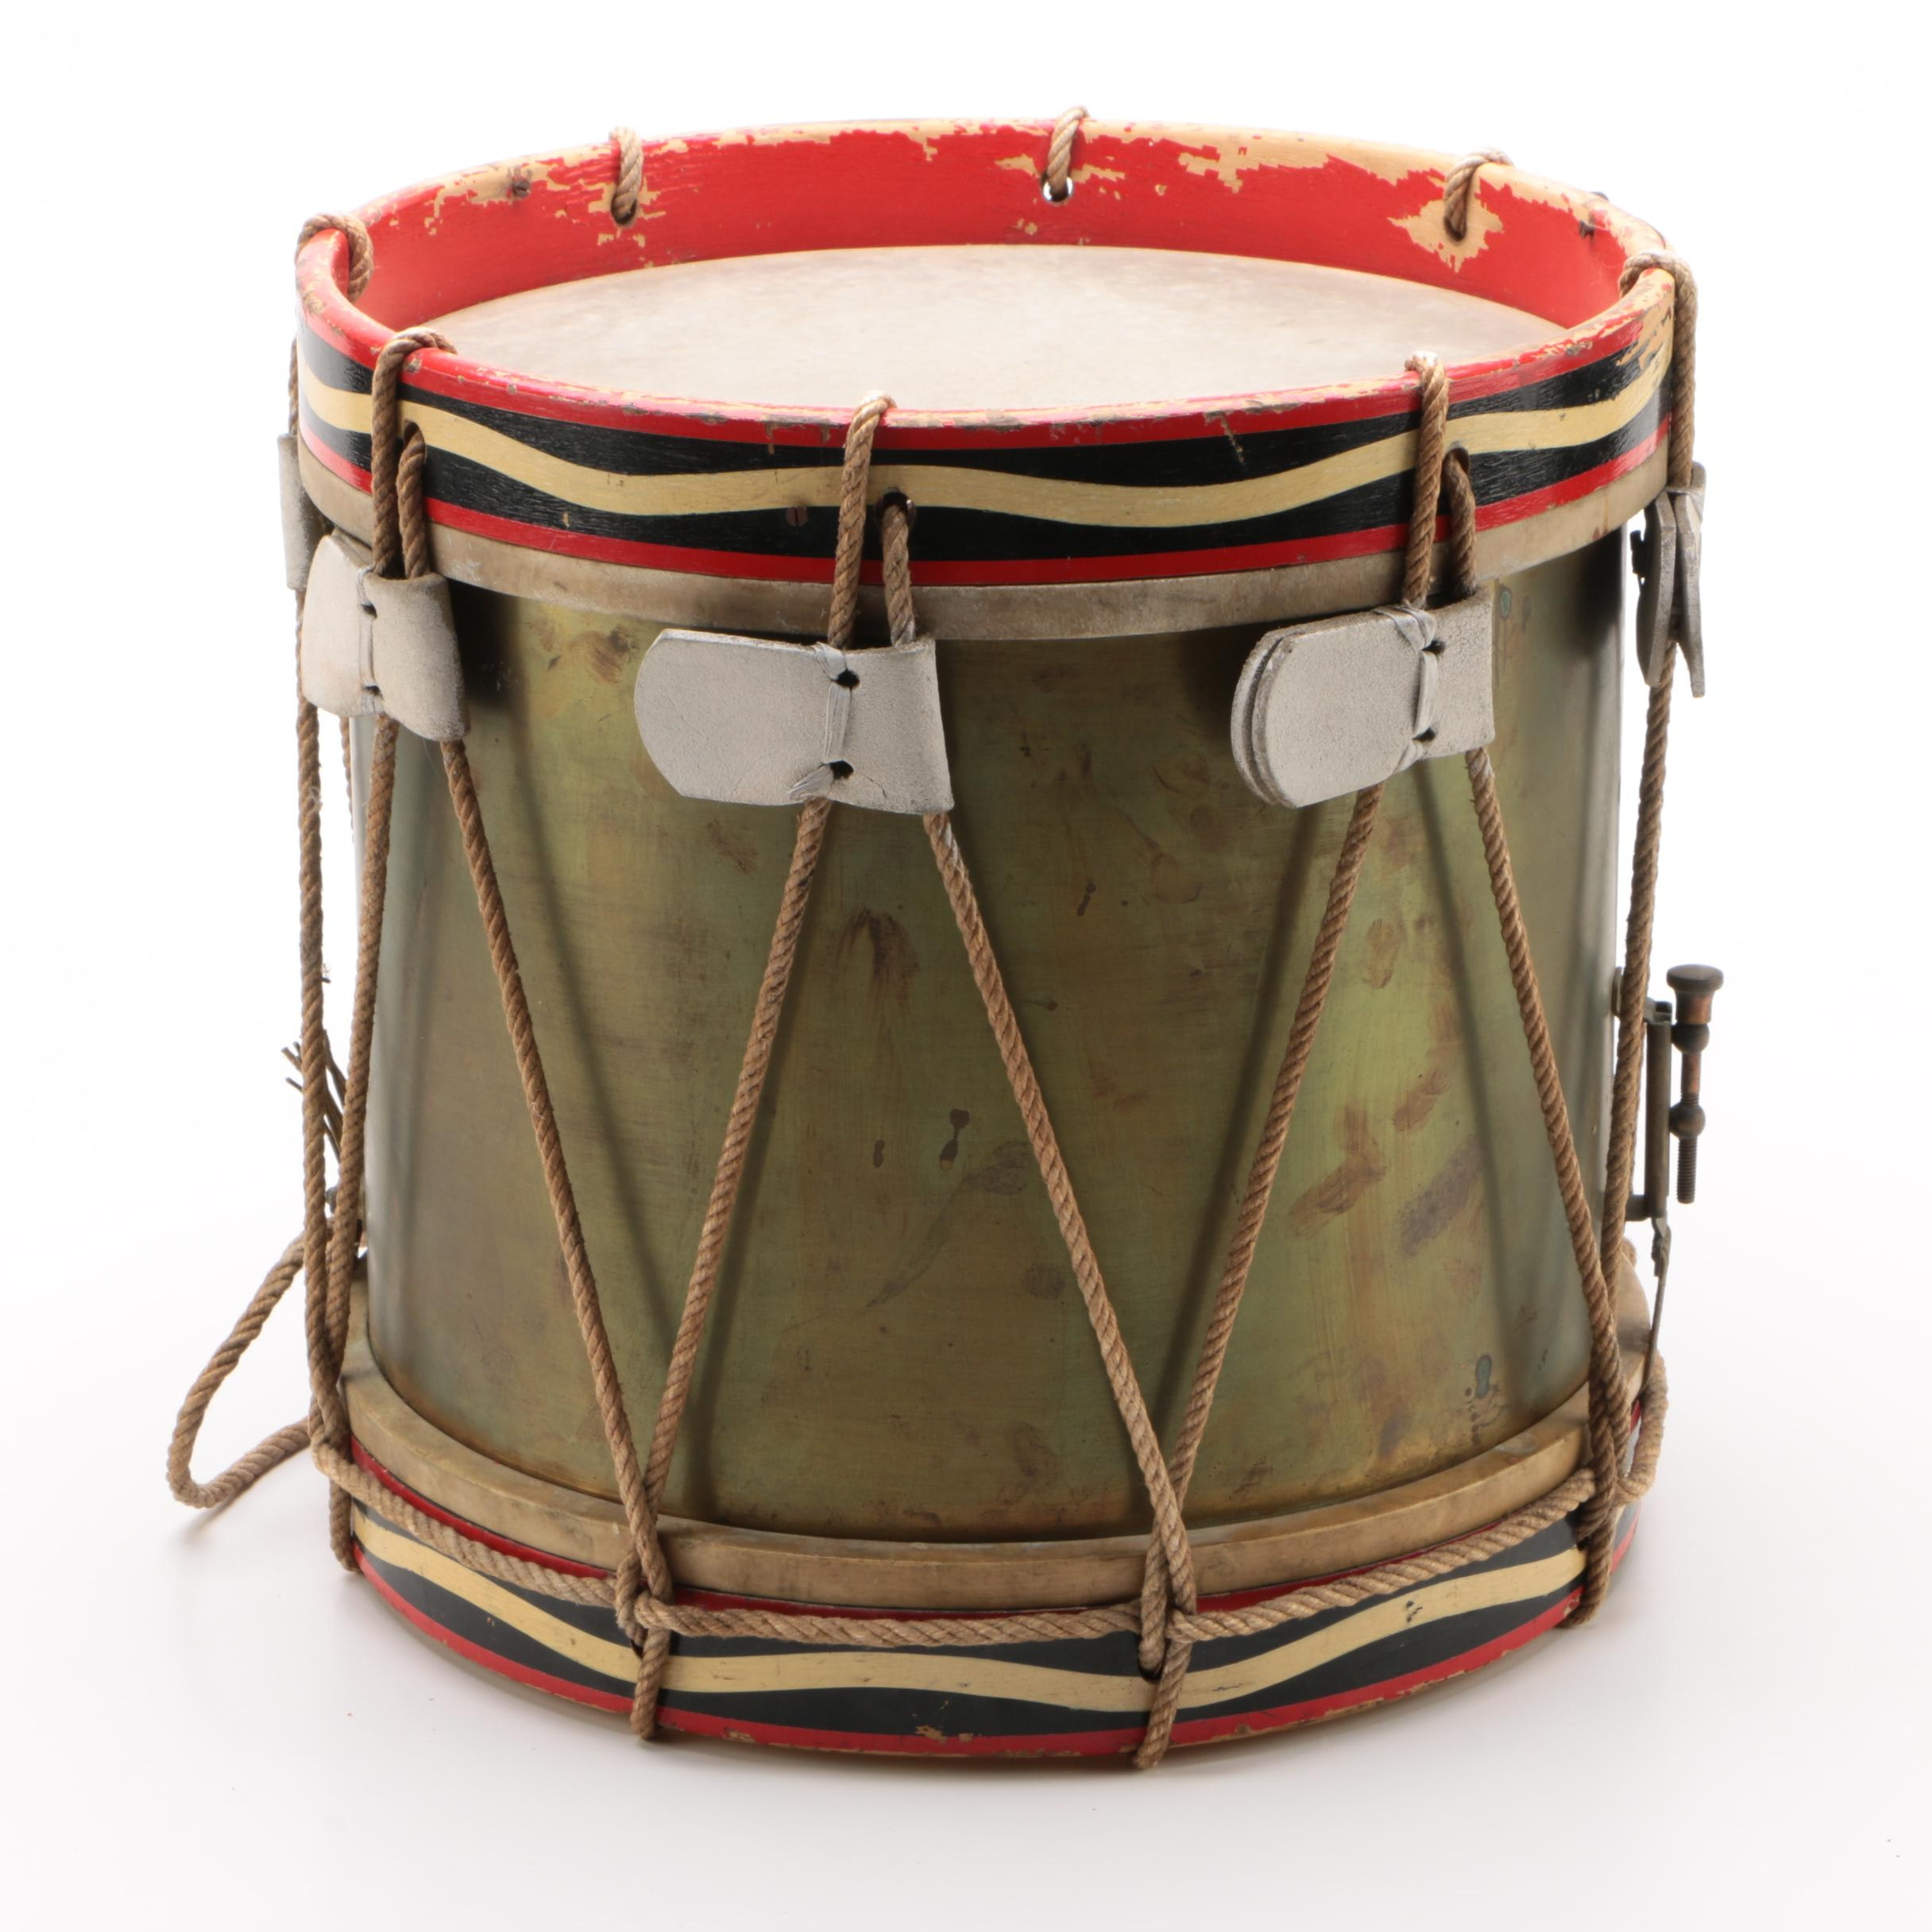 British Regimental Style Rope-Tension Side Drum, Early 20th Century